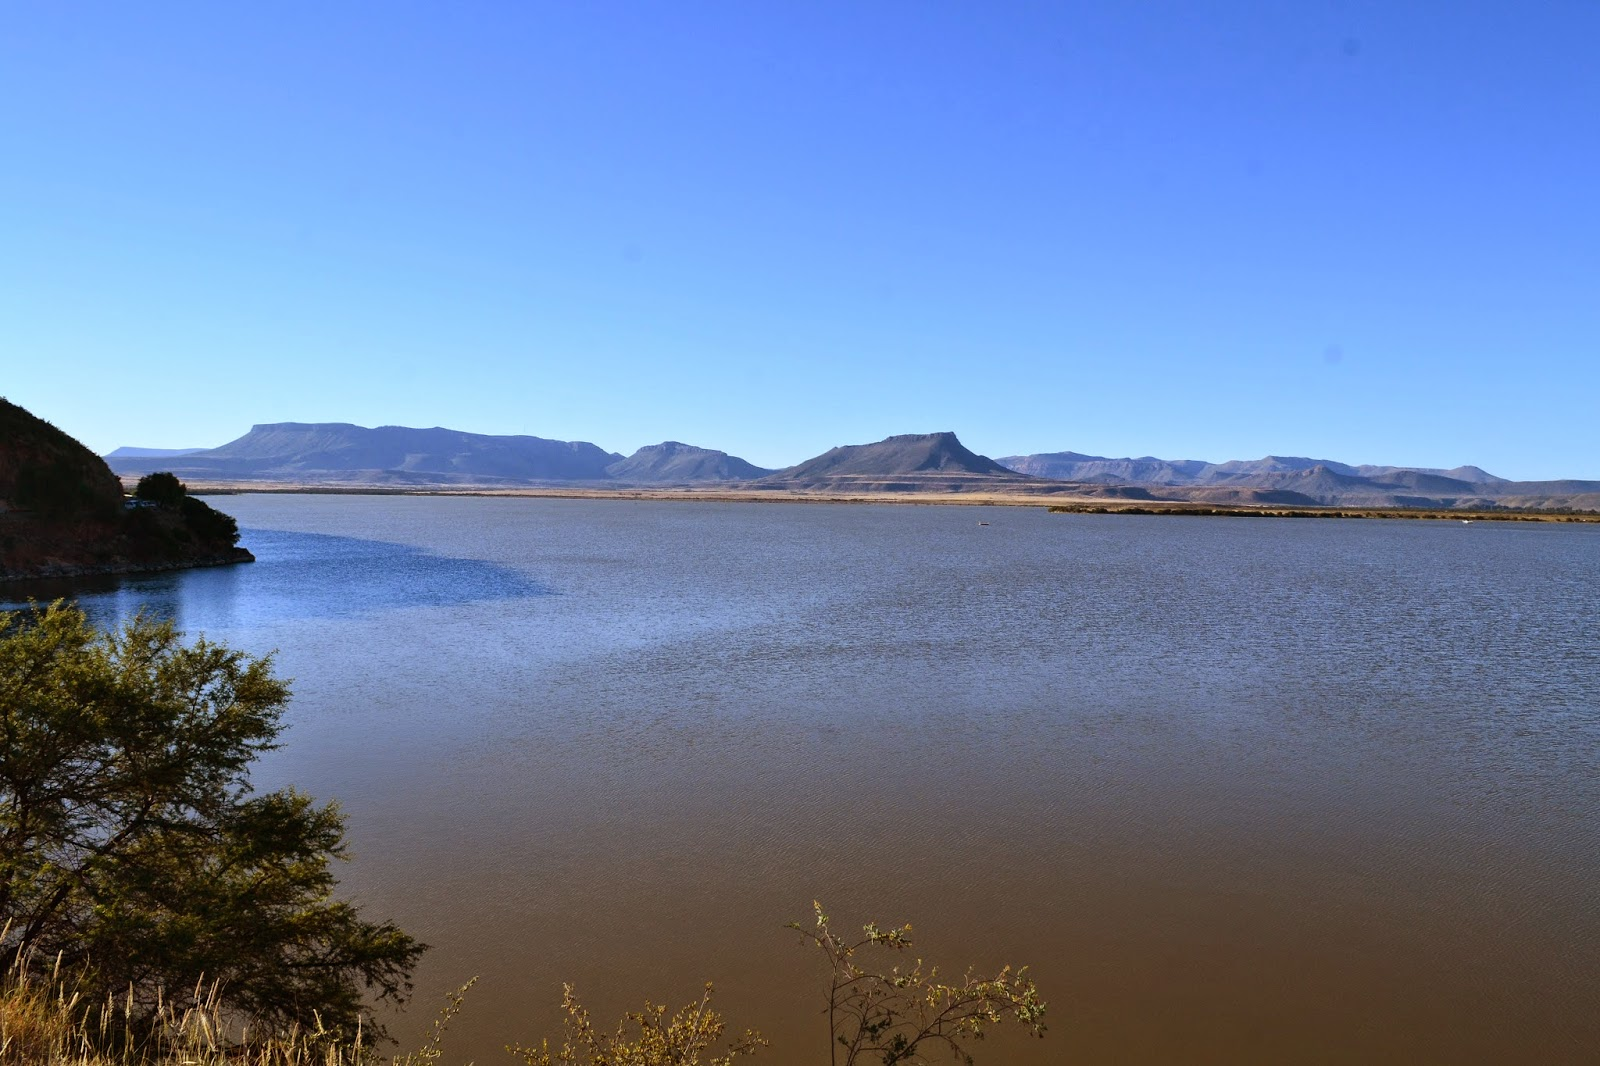 Nqweba dam in the middle of the Karoo